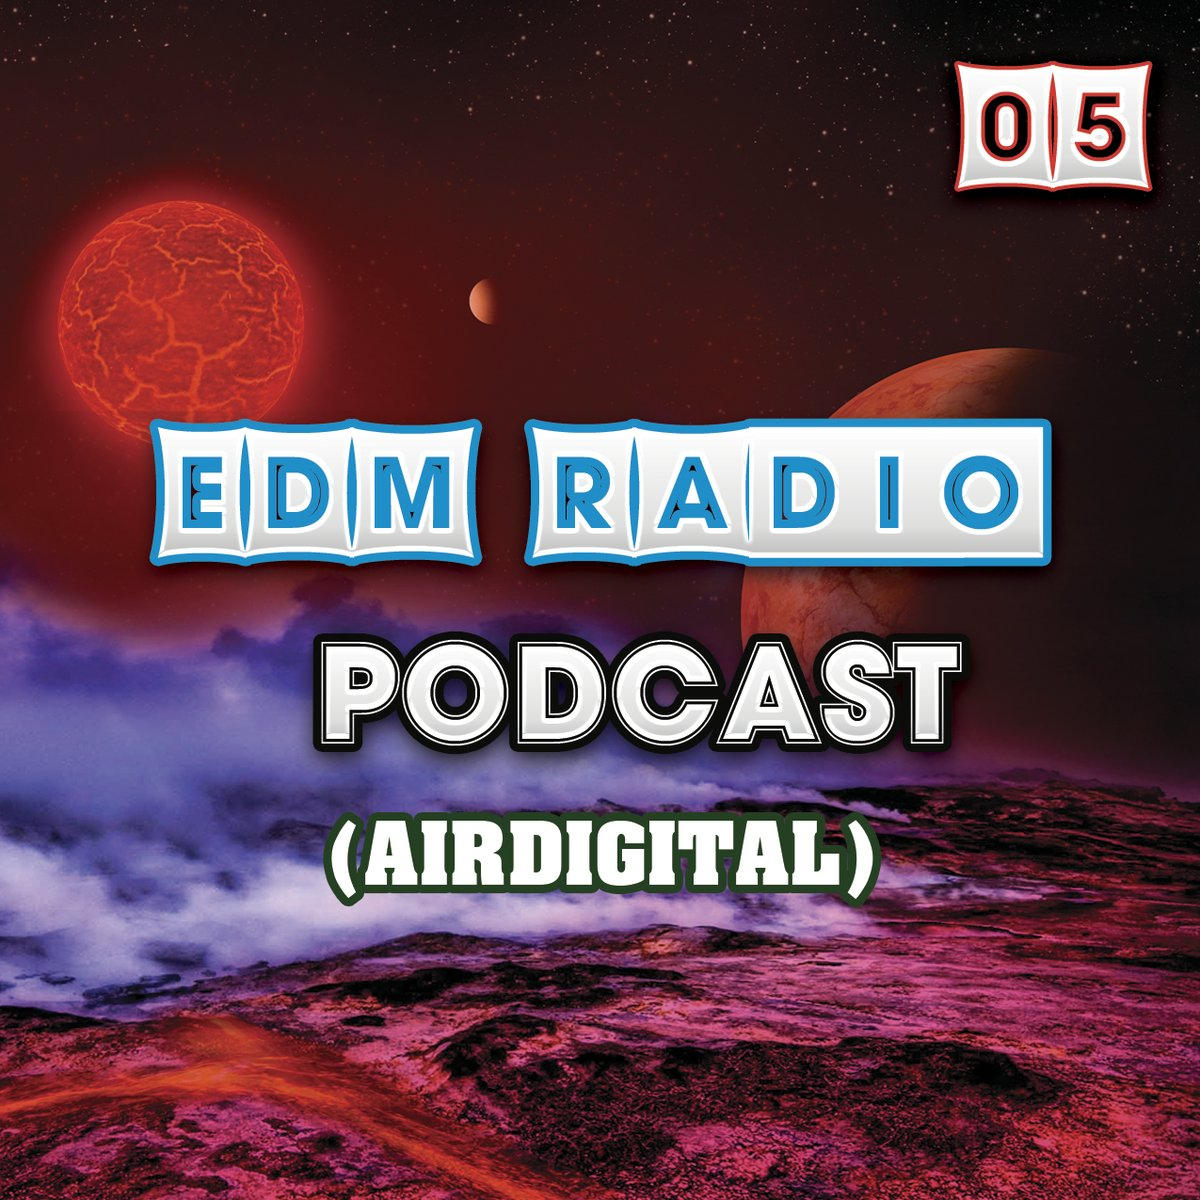 EDM Radio Podcast 05 (Airdigital)  Слушать | Listen: https://t.co/LUMX3hBOVr  01. Ahmed Helmy - The Unchained 02. Ghost Etiquette - Giedi Prime 03. Ben Gold - Starstruck 04. 1st In Line - In Deep Waters 05. Solarstone & Future Disciple - Monkey Mia  #EDMRadio #Podcast #trance https://t.co/zQIyEL6oh7